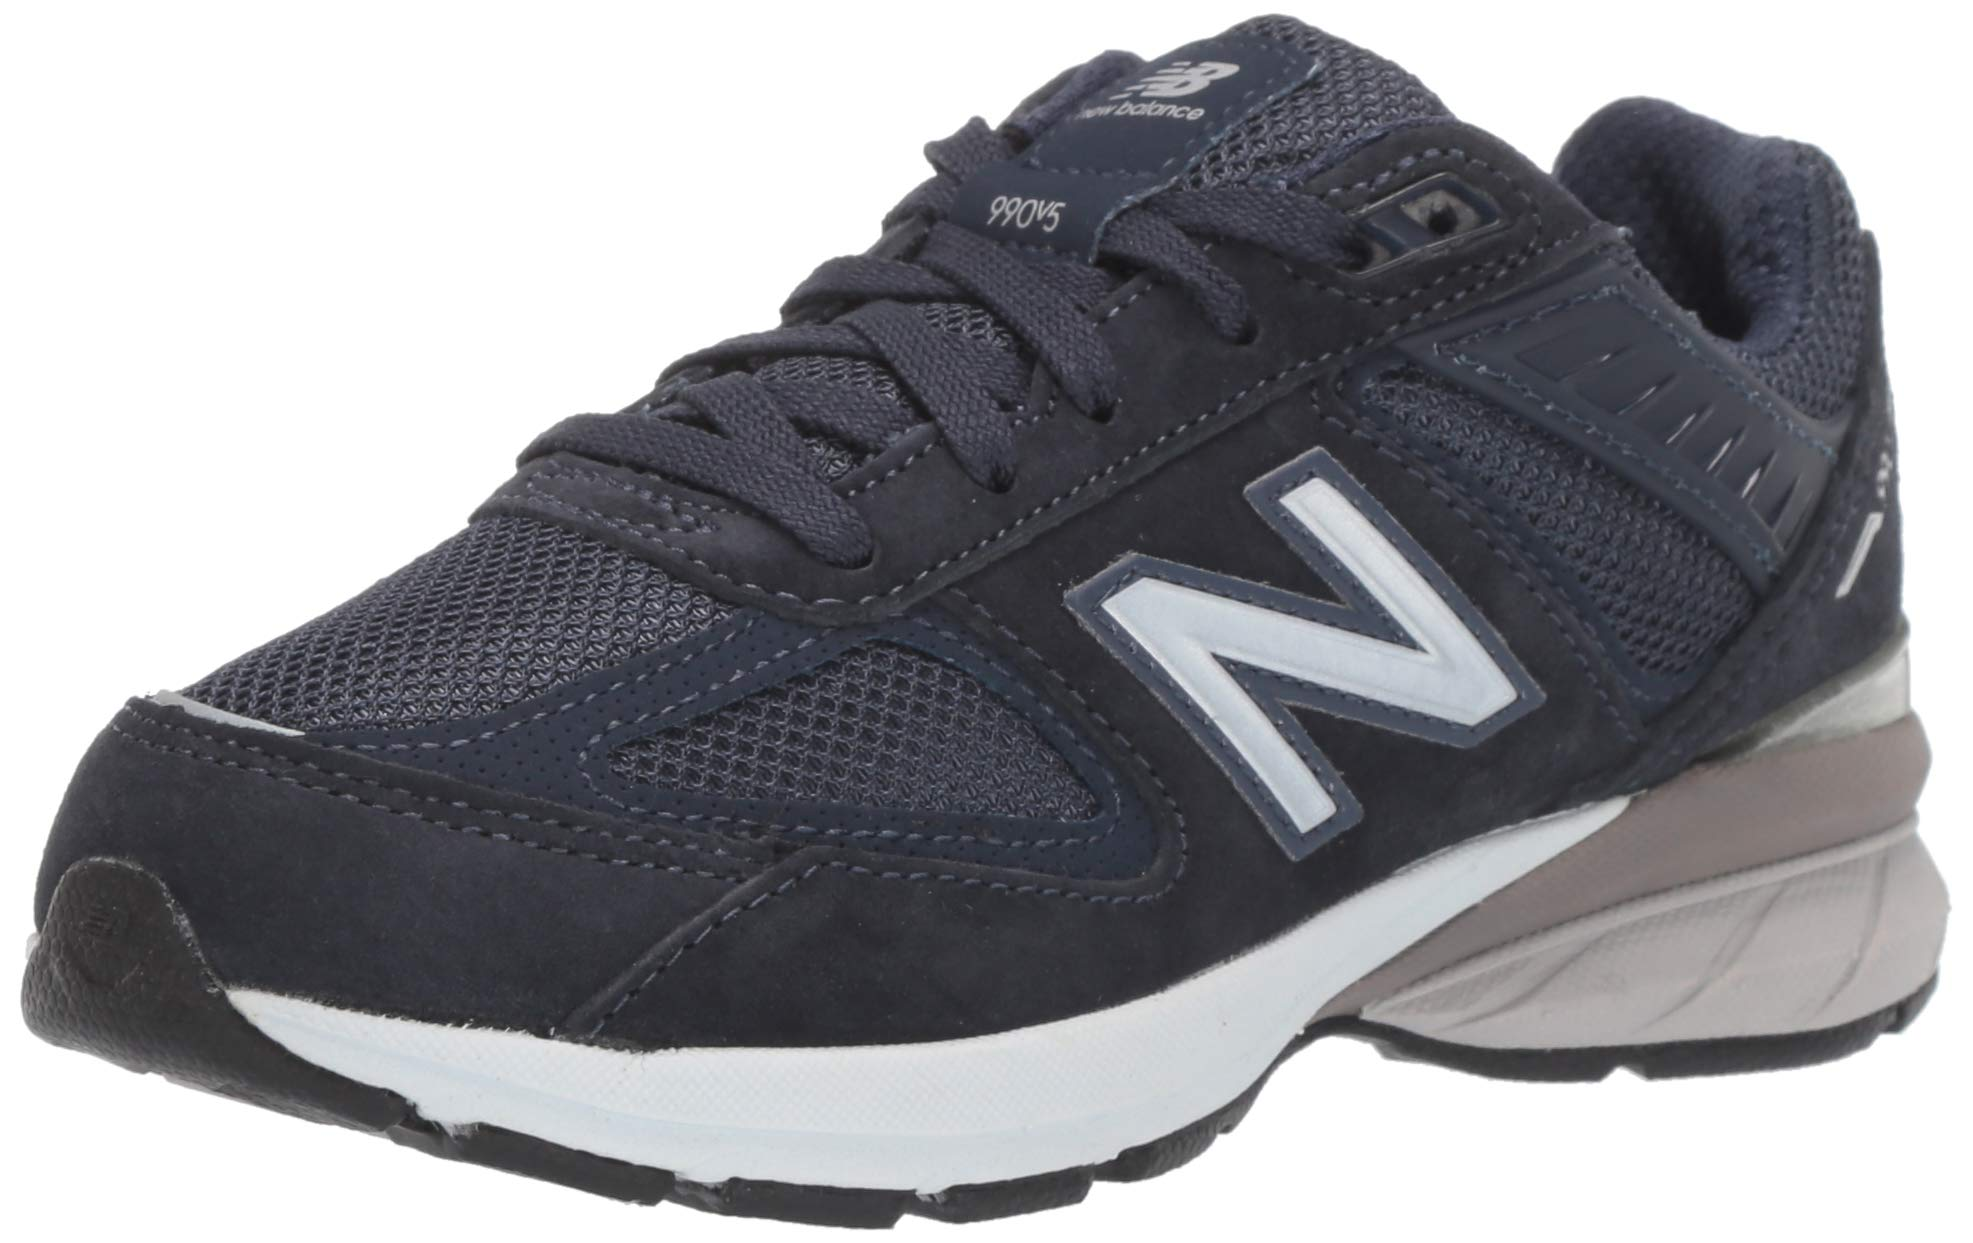 New Balance Boys' 990v5 Running Shoe, Navy, 2 W US Little Kid by New Balance